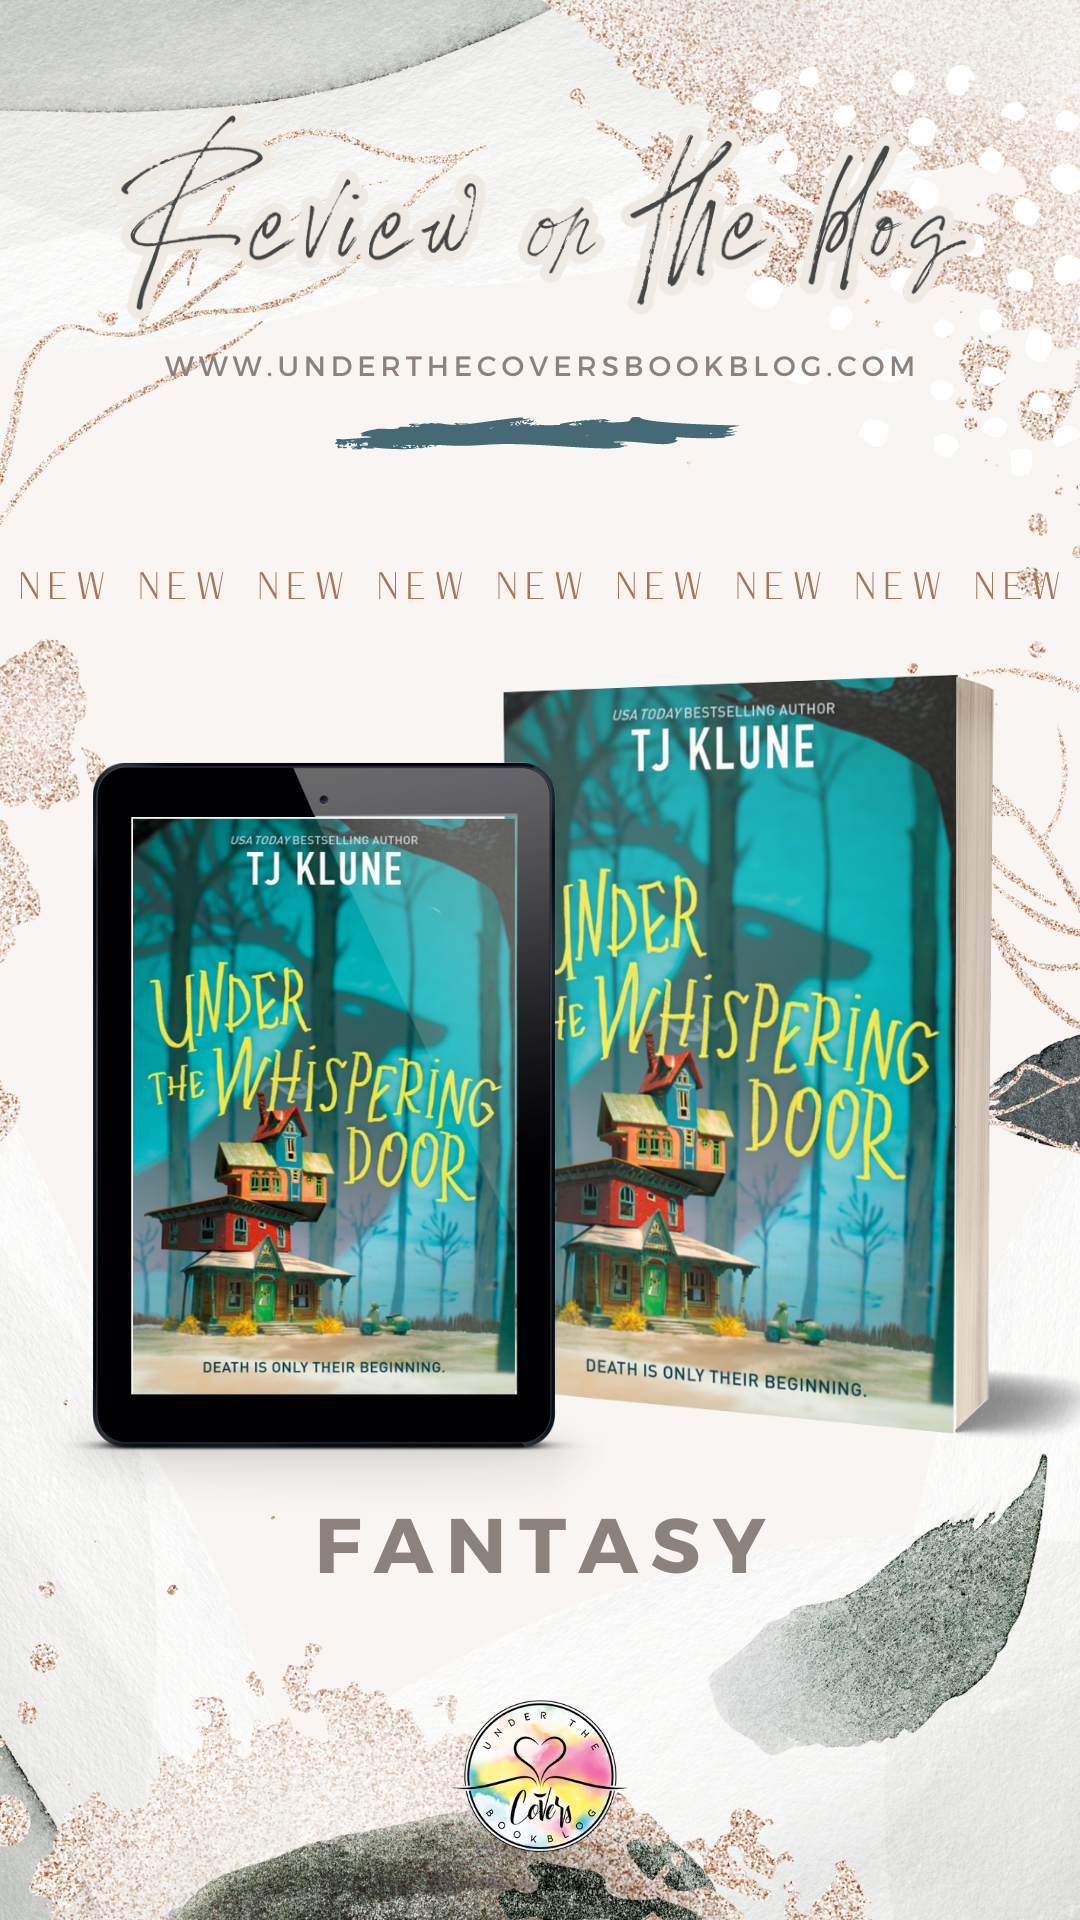 ARC Review: Under the Whispering Door by T.J. Klune